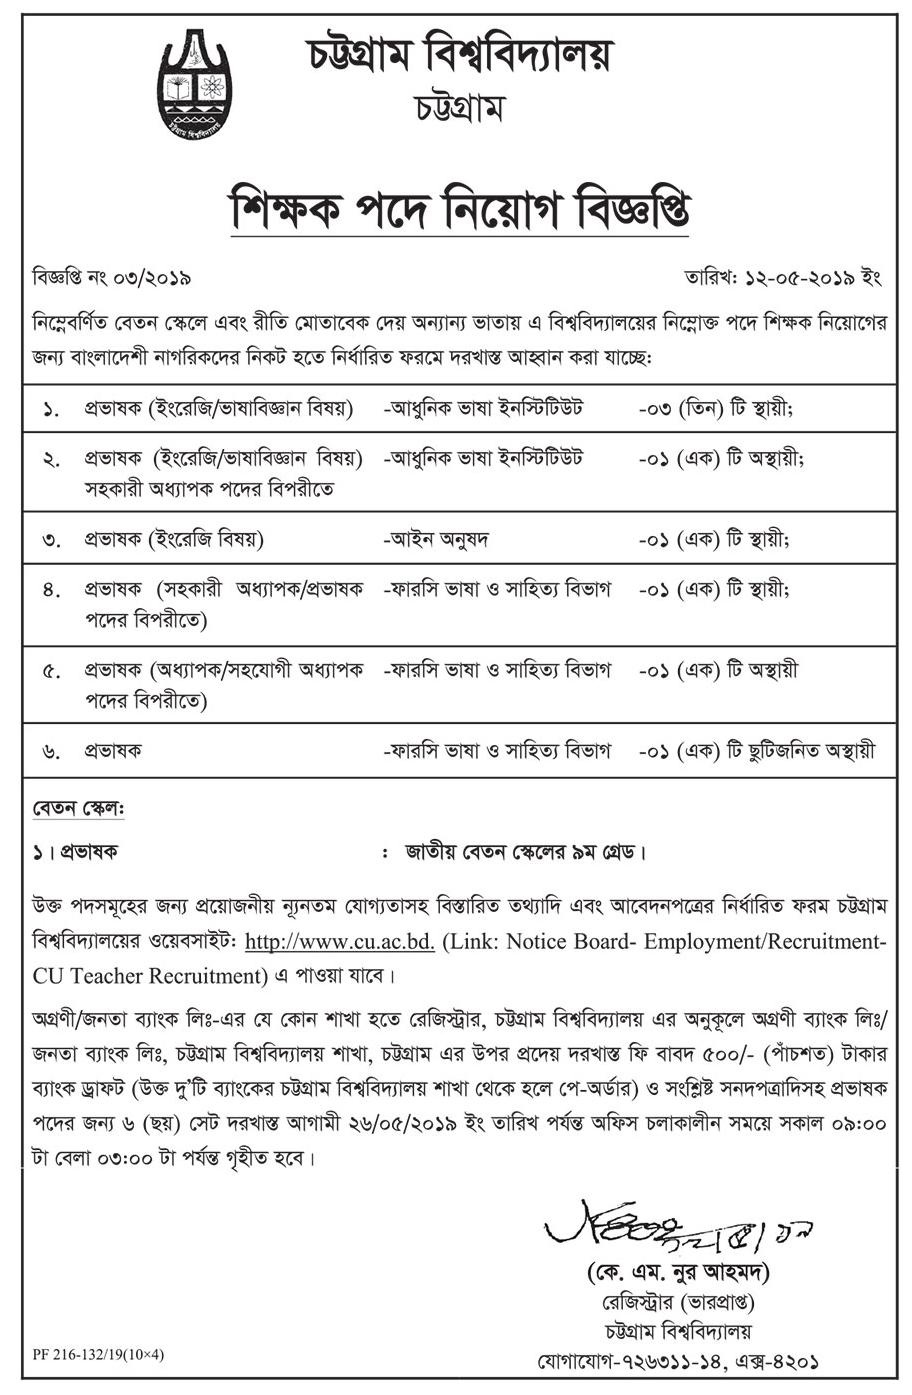 University of Chittagong CU Job Circular 2019